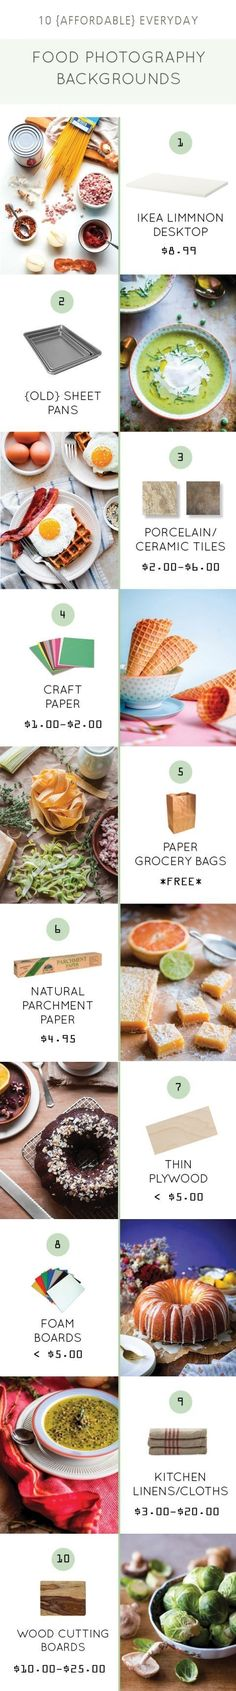 10 Affordable Everyday Food Photography Backgrounds